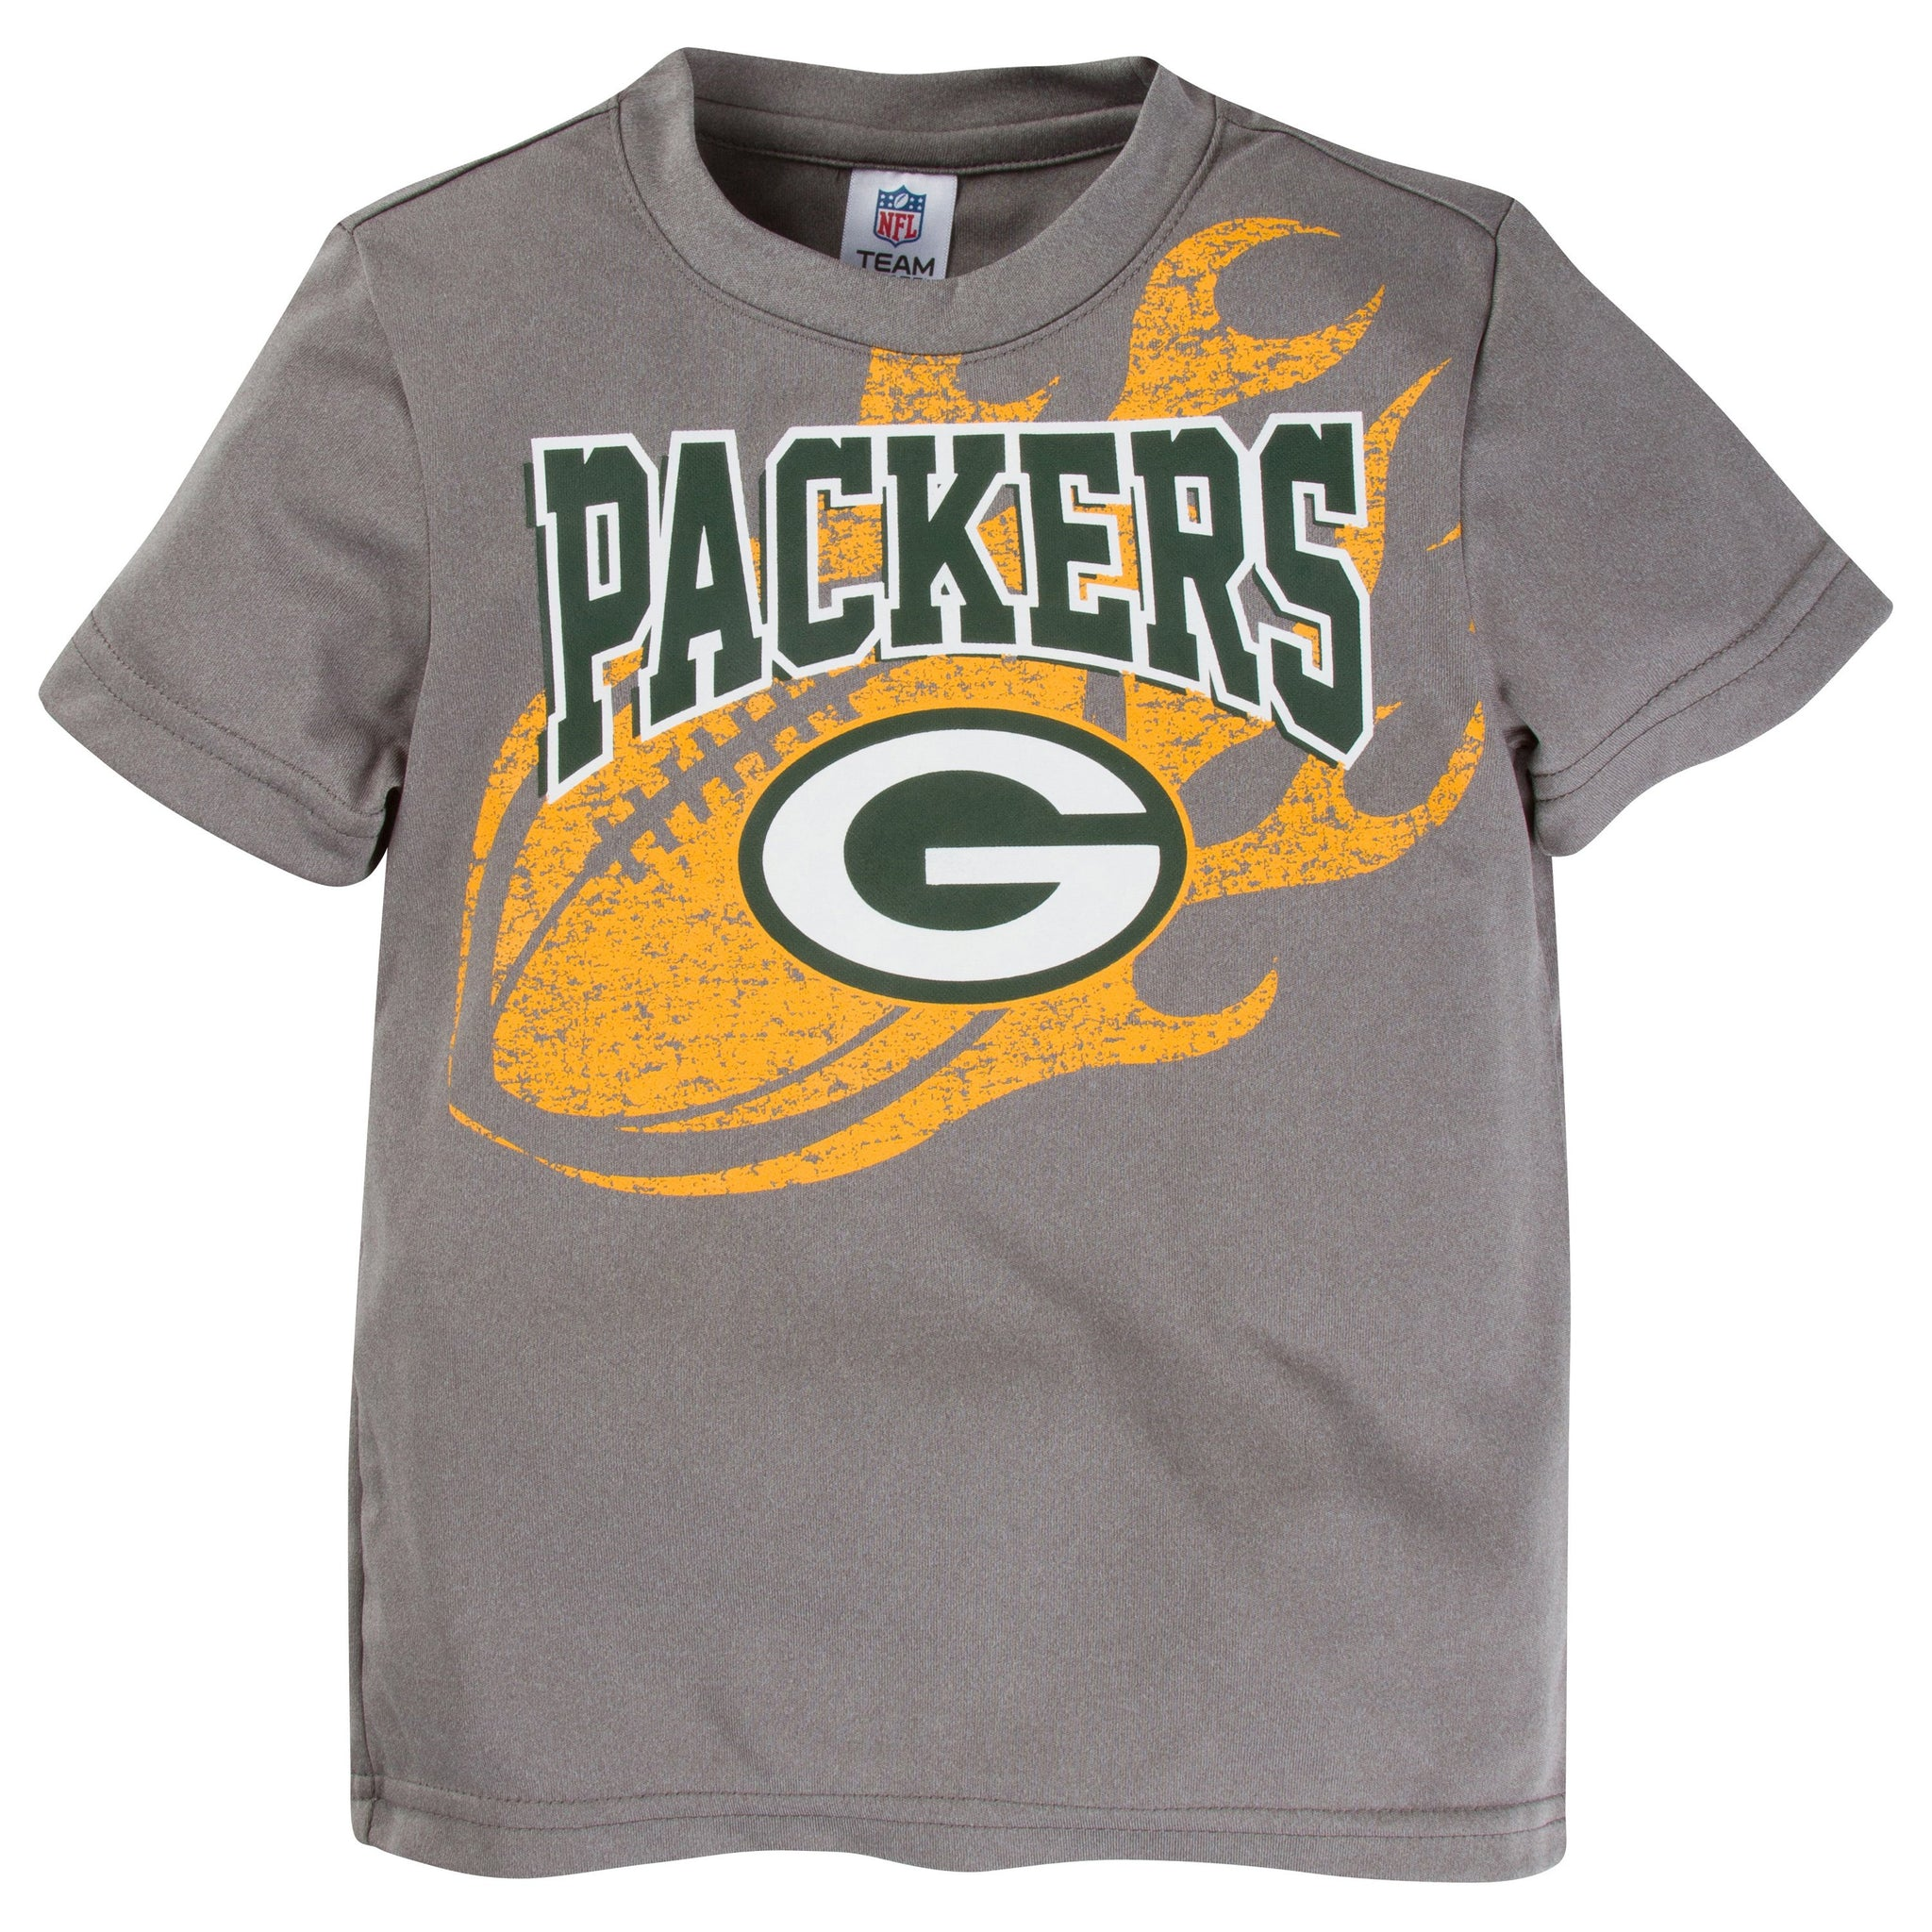 NFL Green Bay Packers Toddler Boys Short Sleeve Performance Tee Shirt